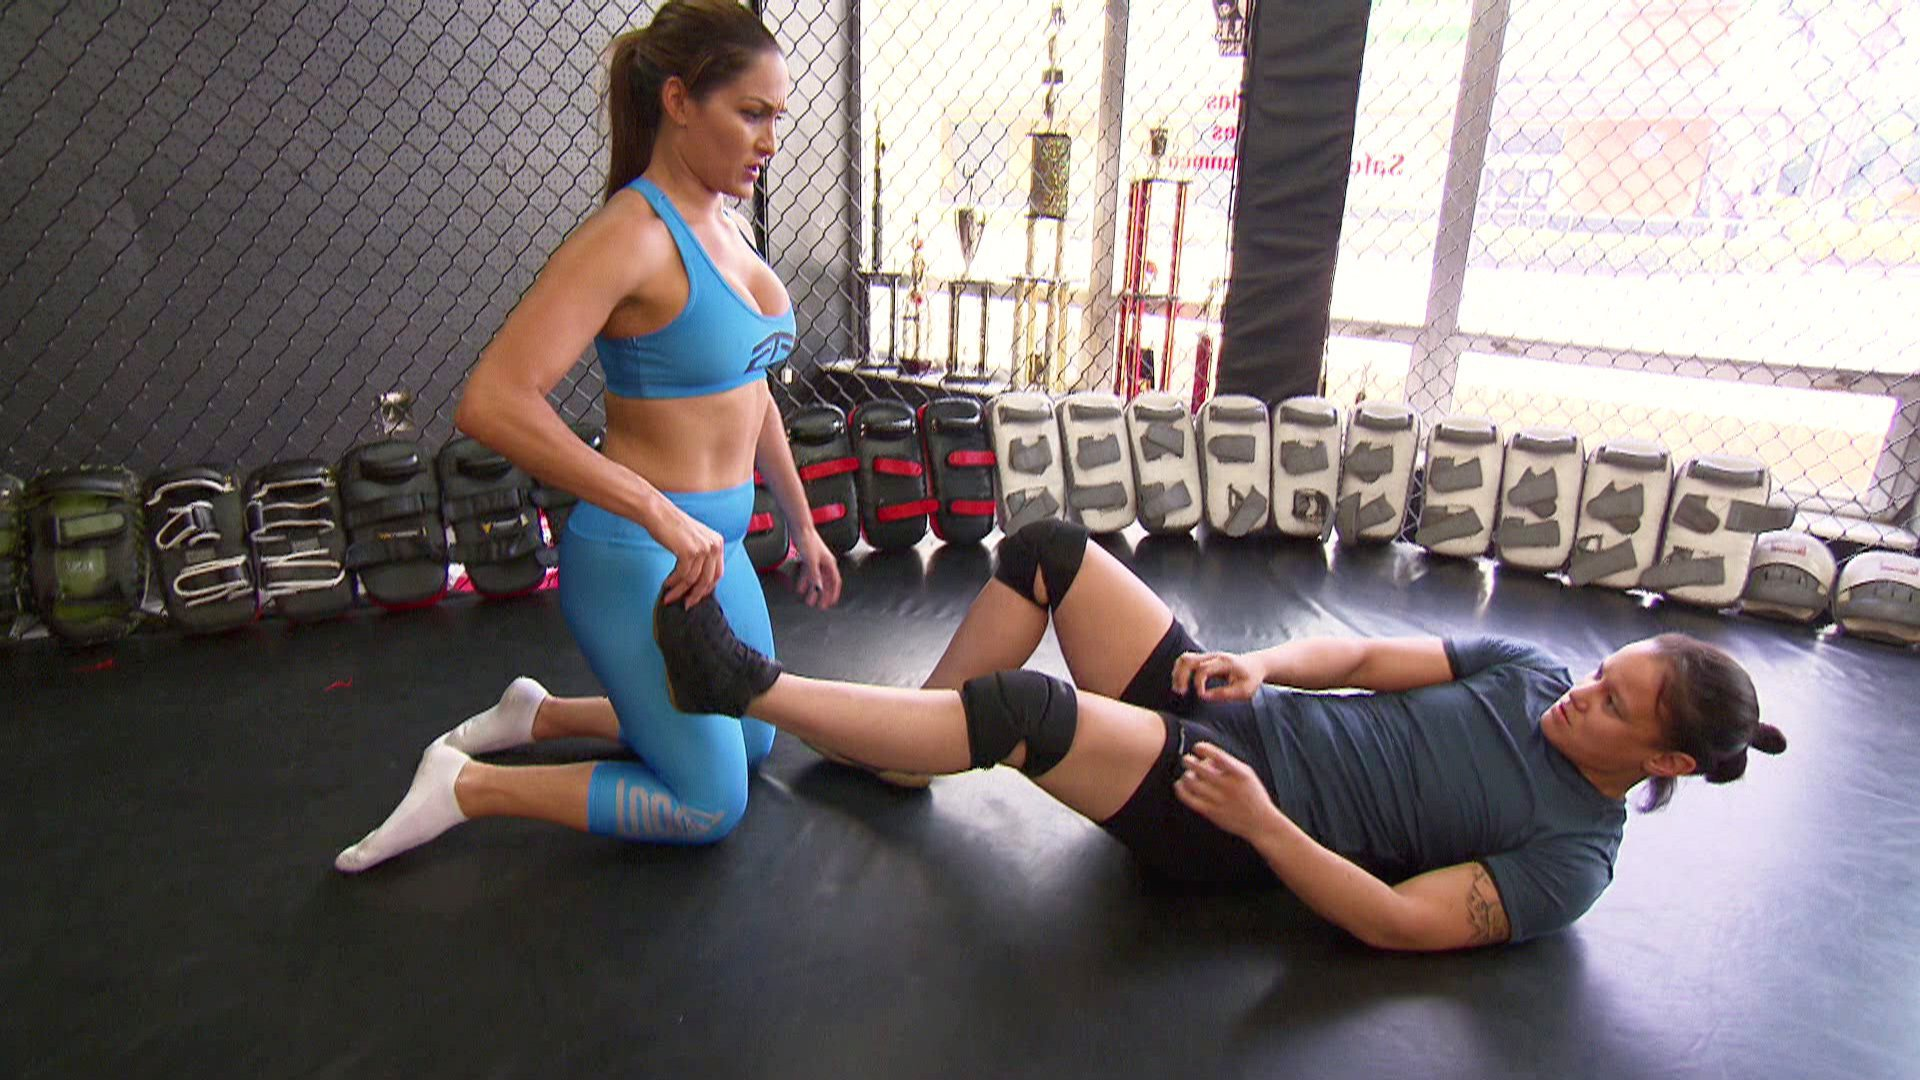 Nikki, Nattie and MMA fighter Shayna Baszler attempt to work out a new submission hold. for Nikki.